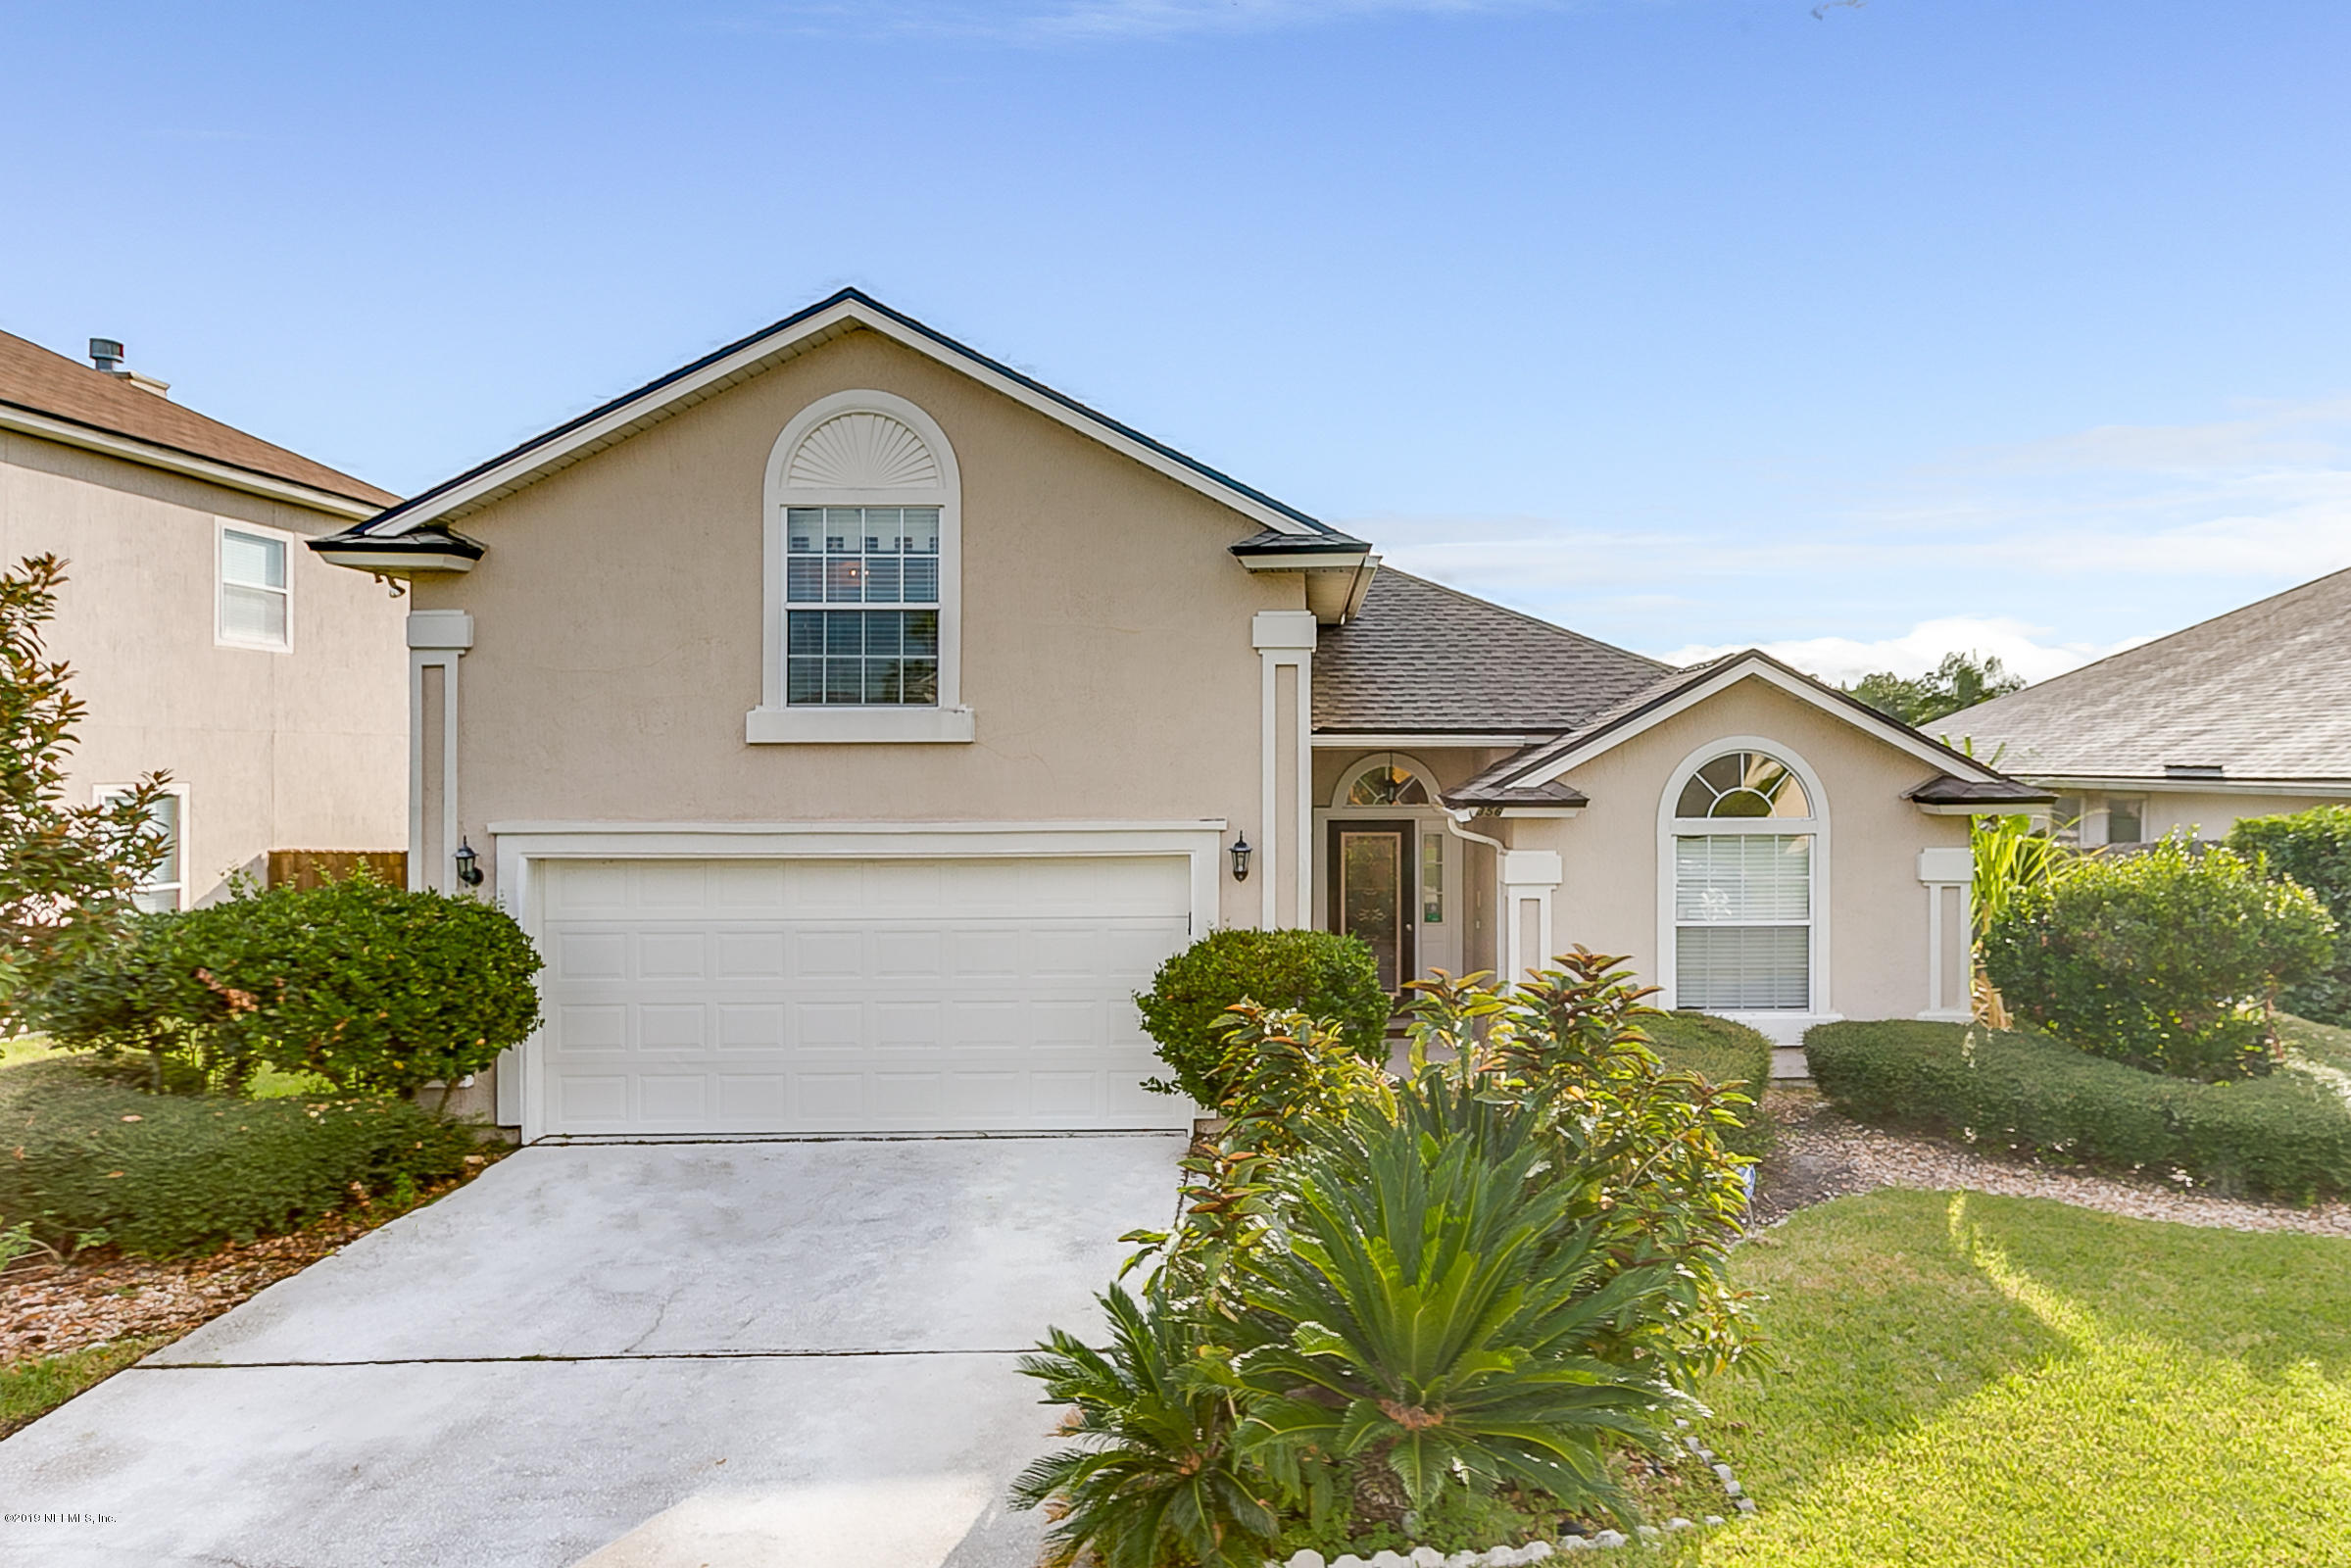 356 SUMMIT, ORANGE PARK, FLORIDA 32073, 5 Bedrooms Bedrooms, ,3 BathroomsBathrooms,Residential - single family,For sale,SUMMIT,1021255